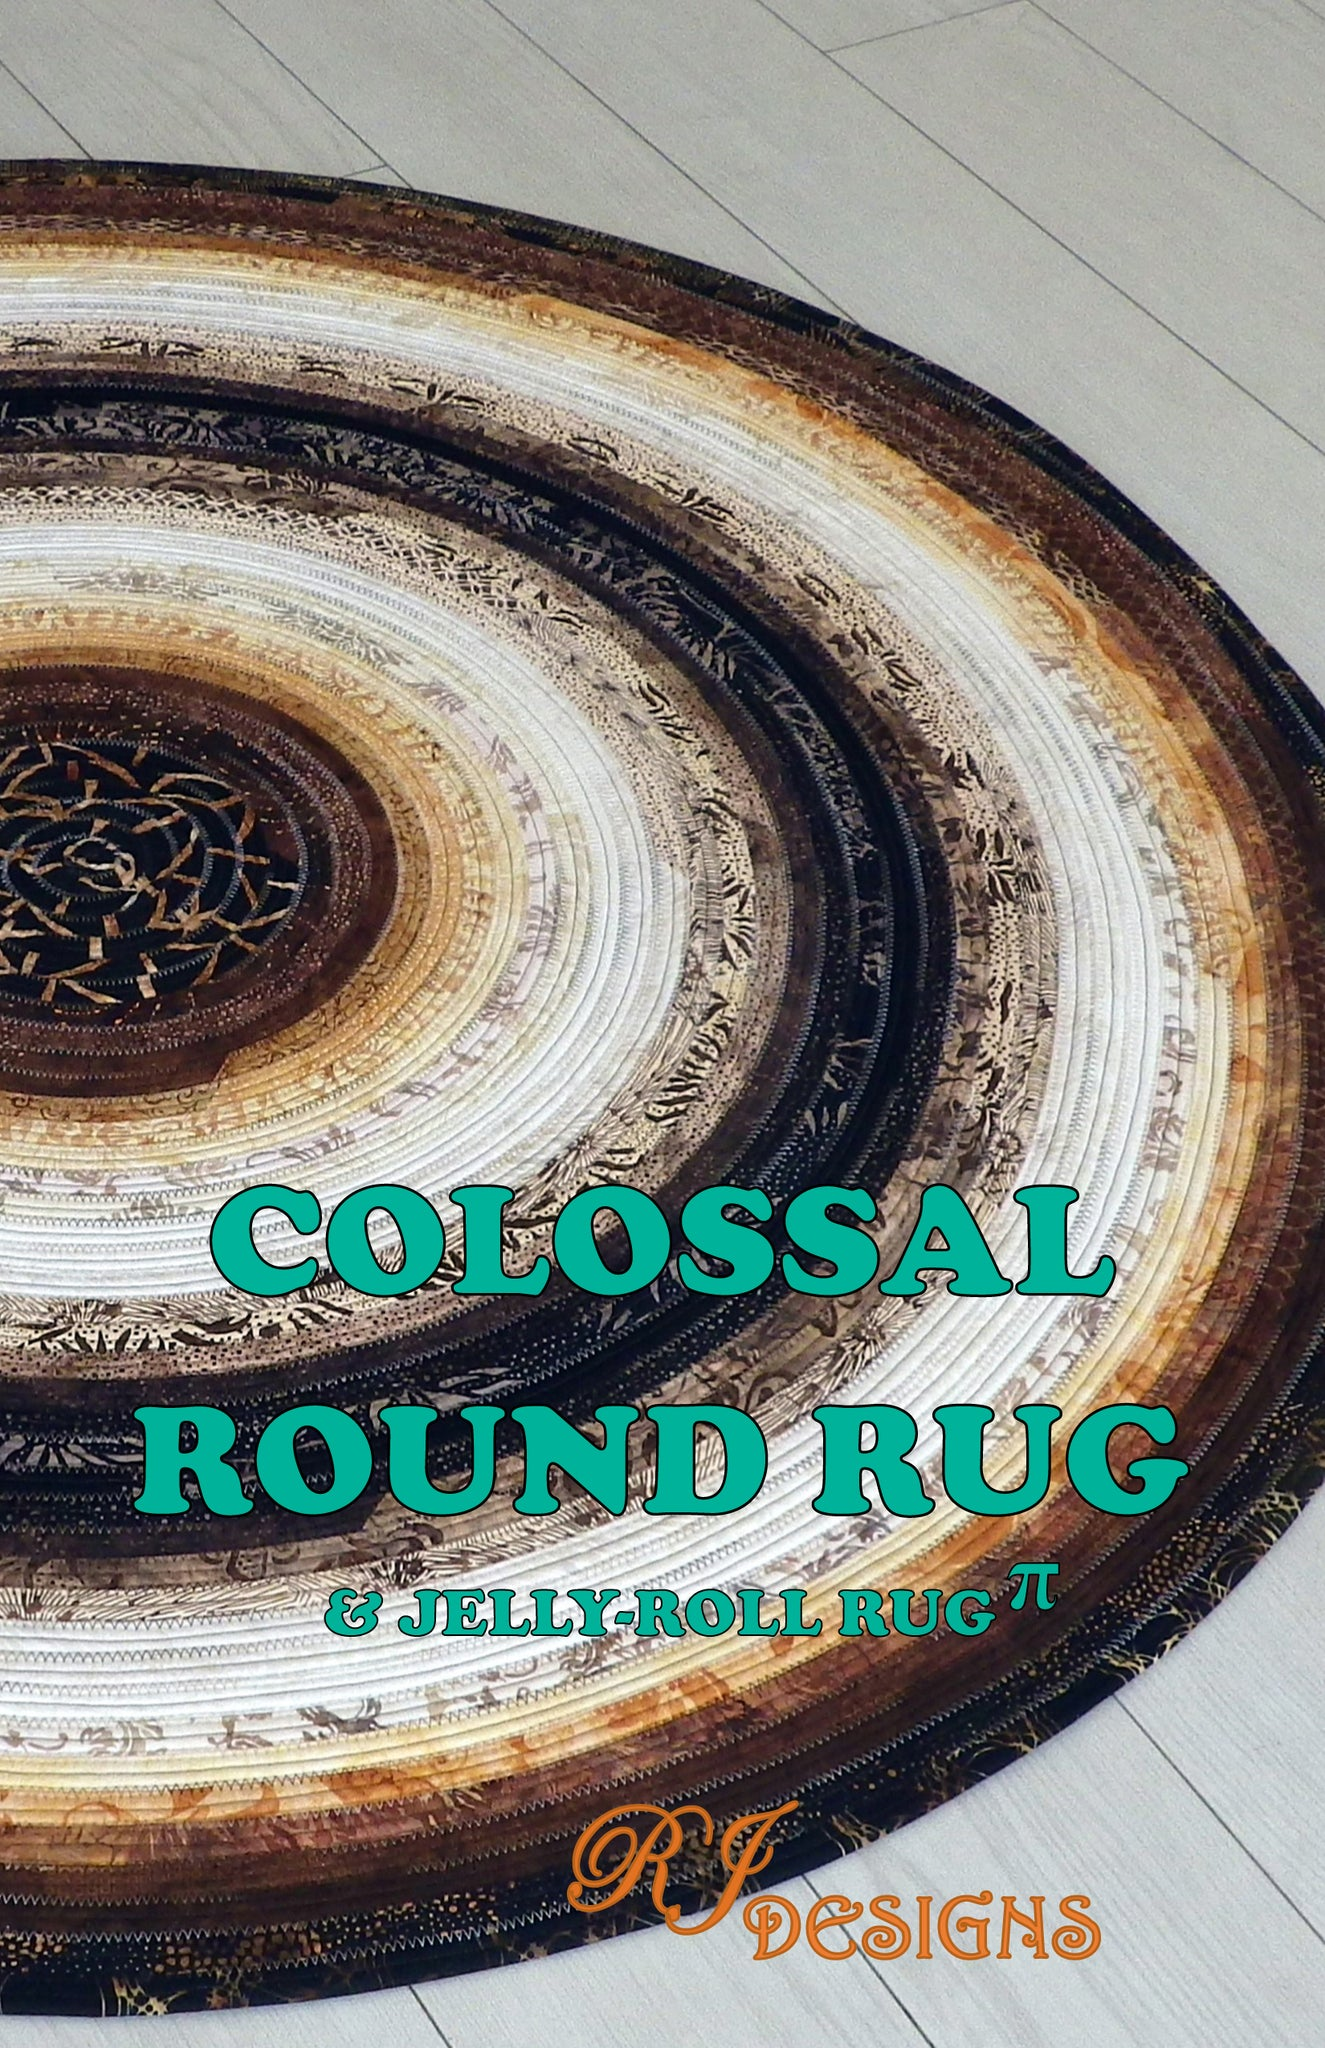 Colossal Round Rug (paper pattern)